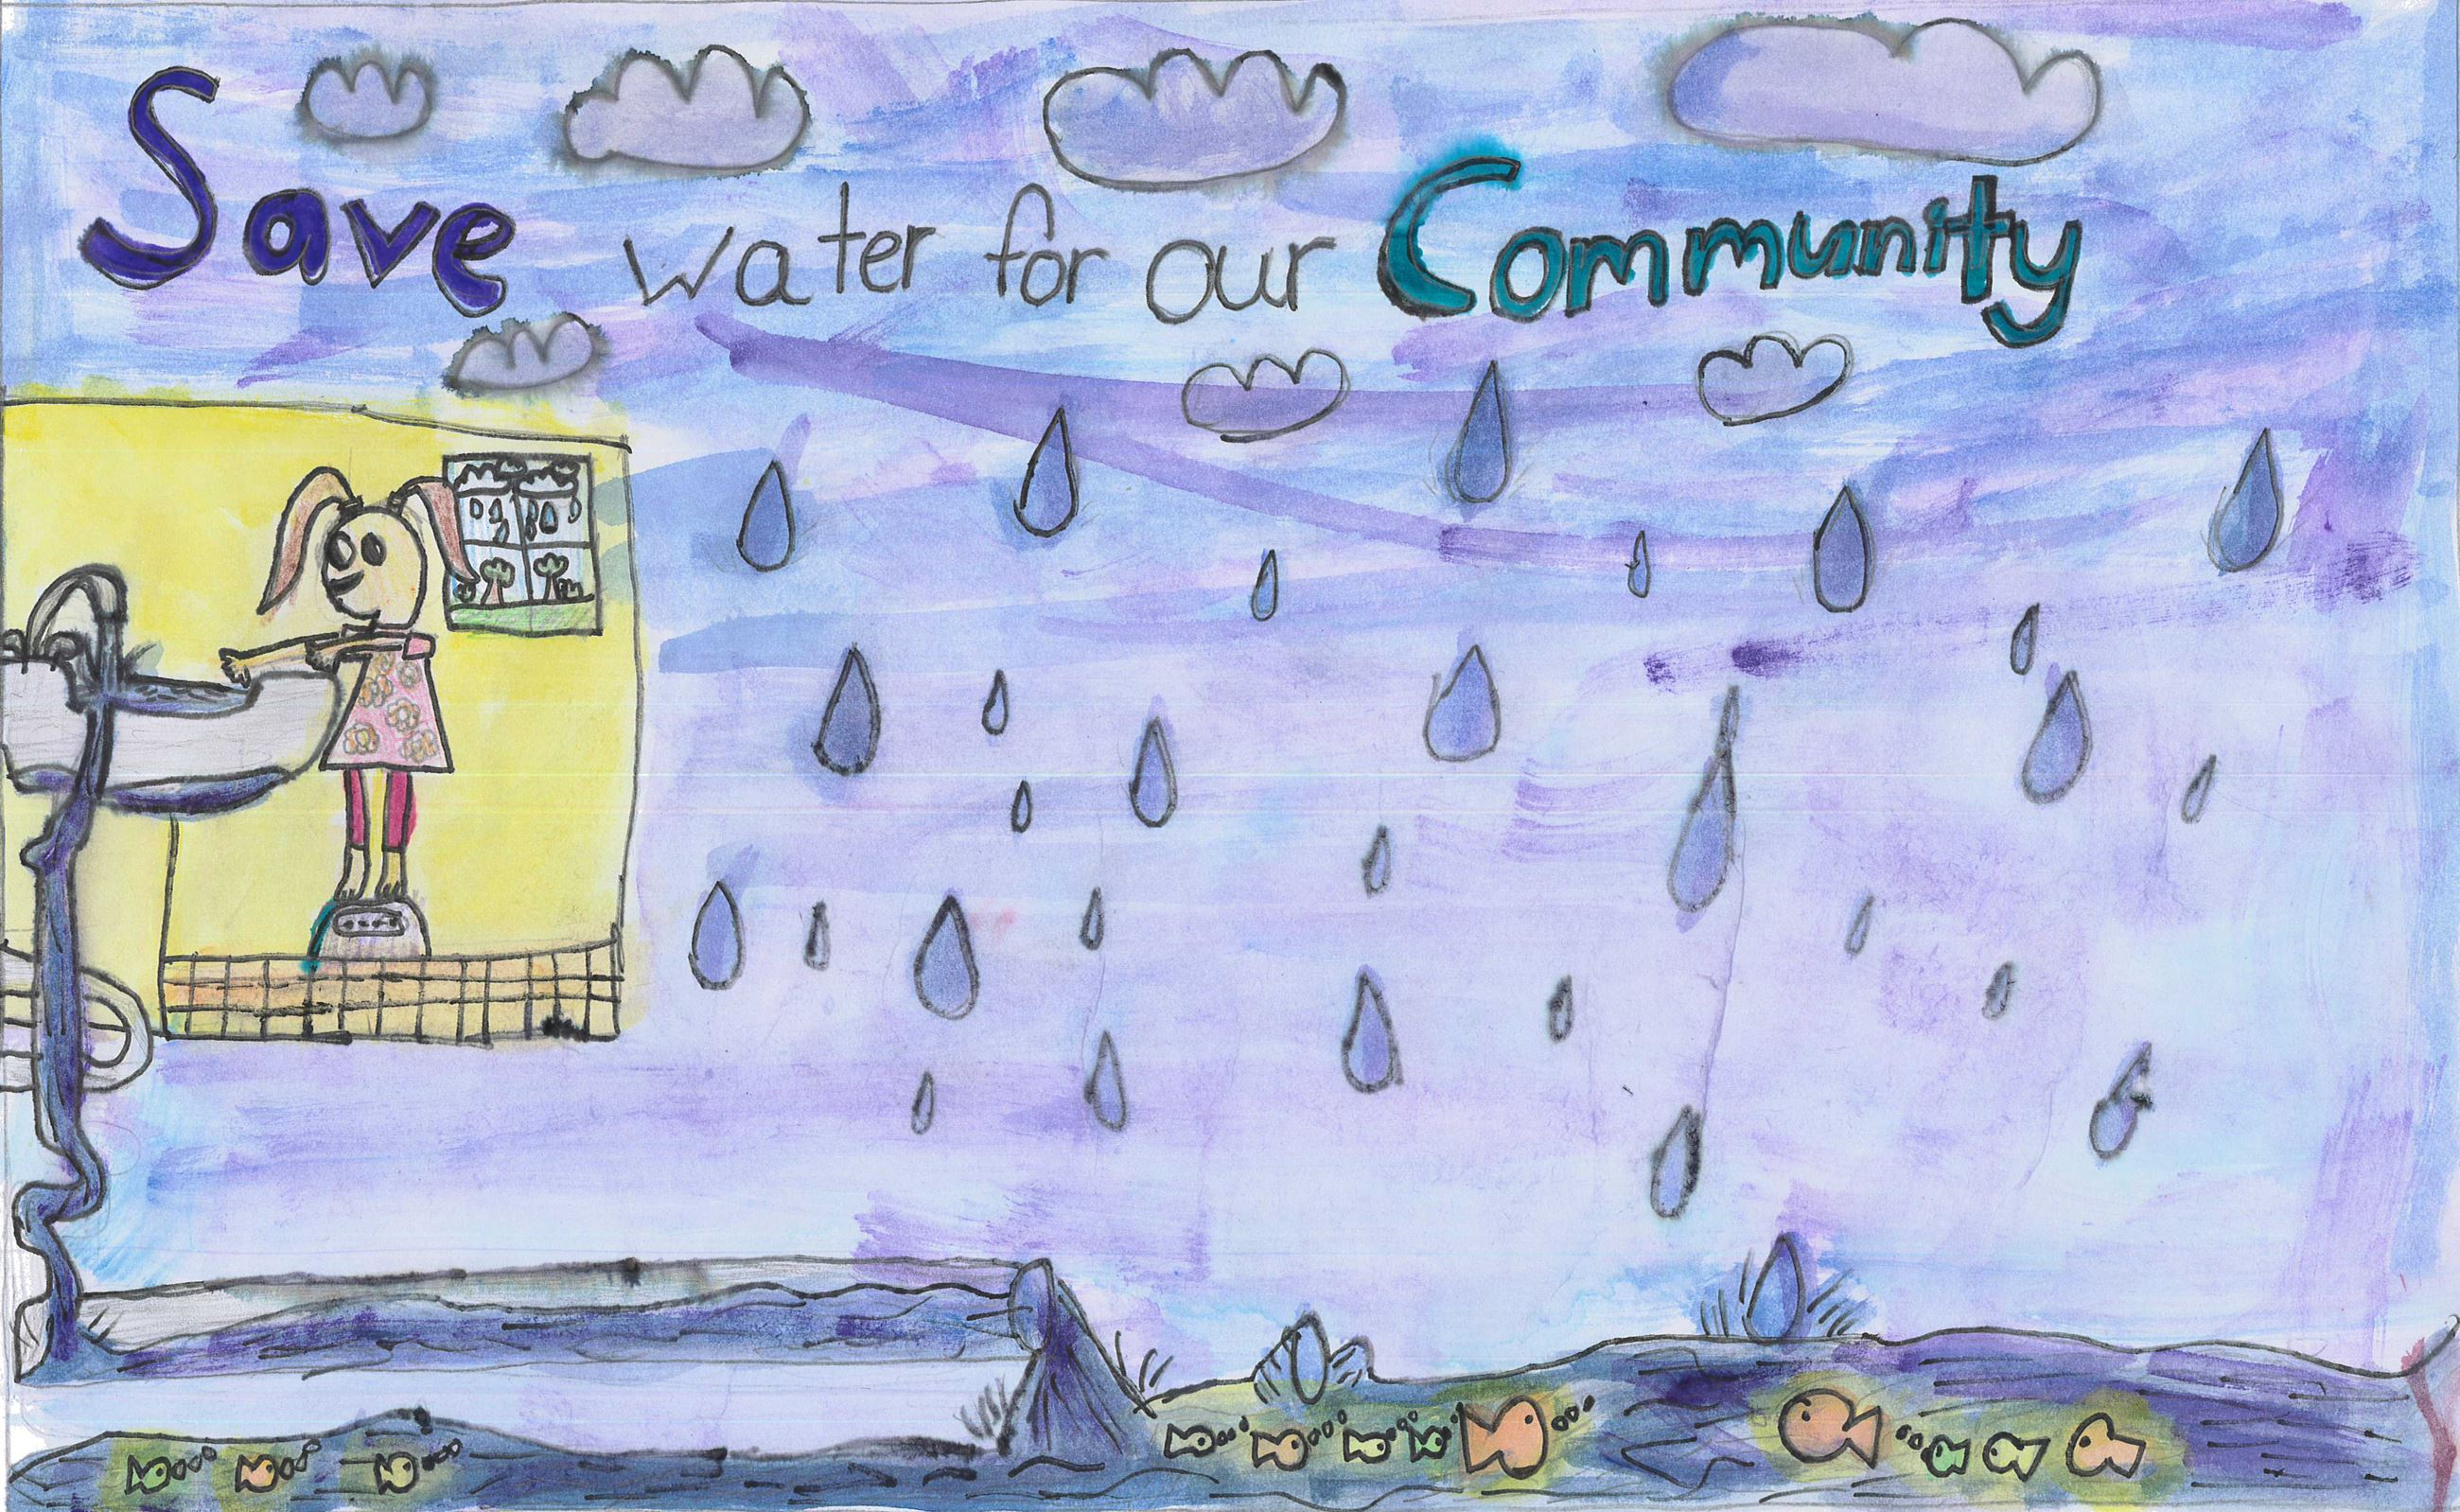 Analynn Pascual Bermudez&#39s poster with illustrations of water use and conservation